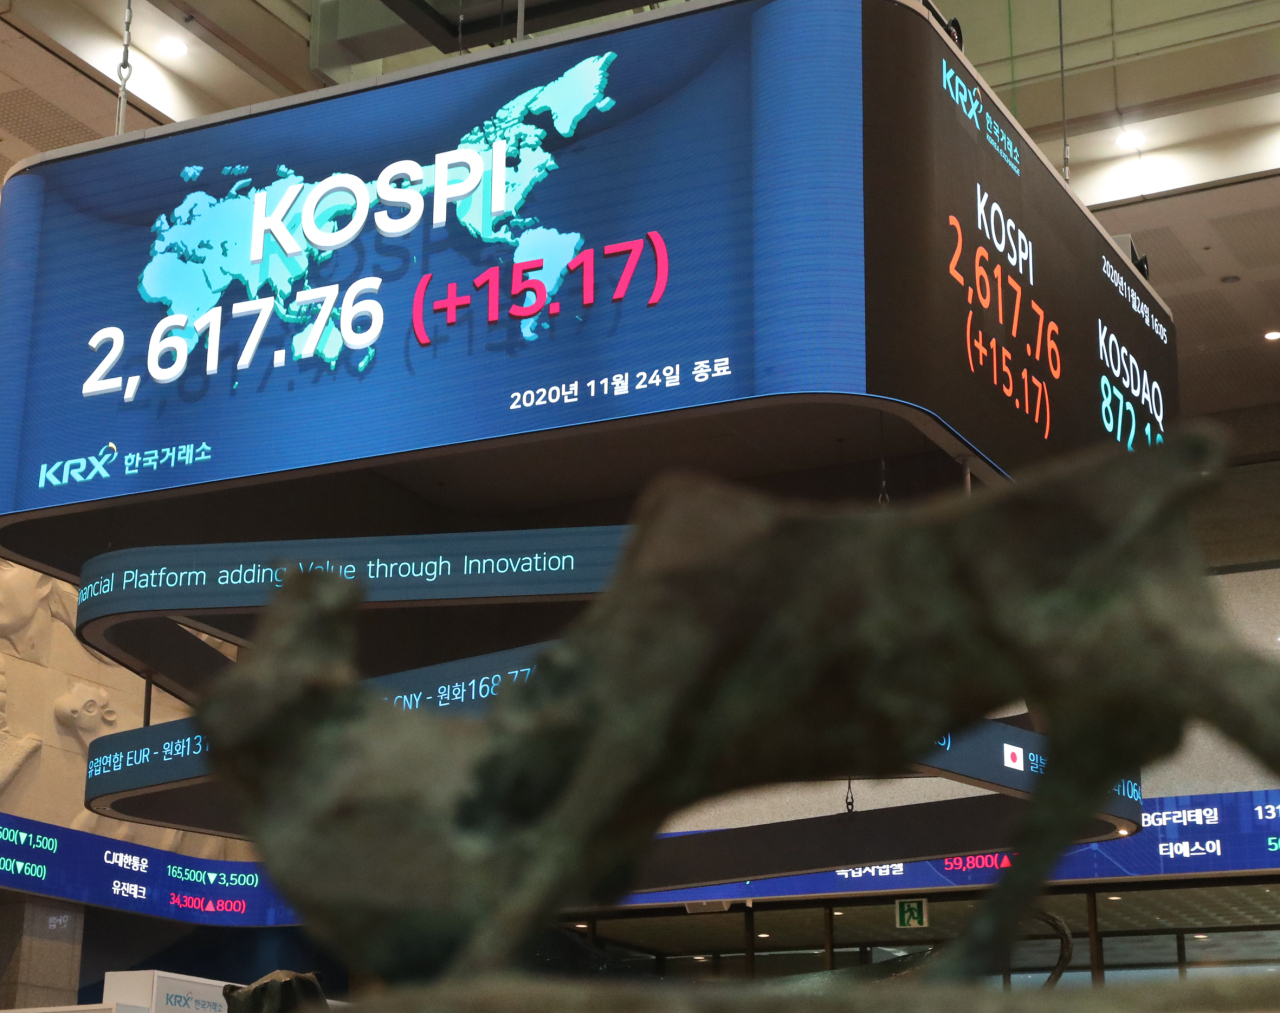 An electronic signboard at the Korea Exchange on Tuesday shows the Kospi closed at 2,617.76, setting its all-time high. (KRX)